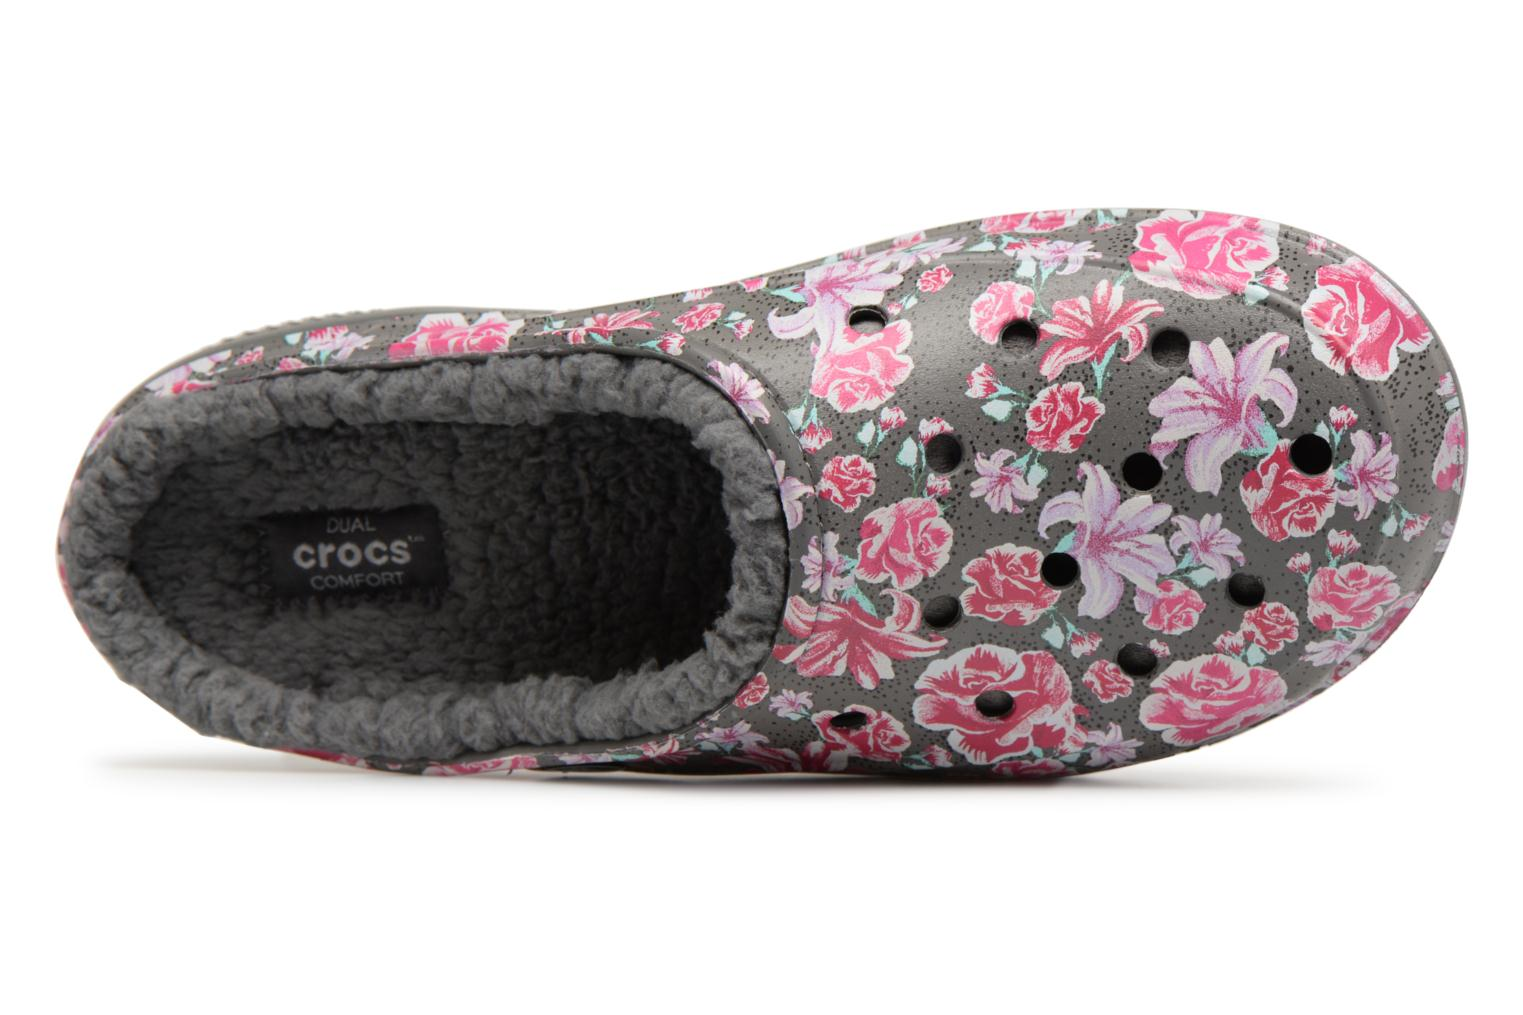 Floral Slate Grey Lined Freesail Graphic Crocs Crocs Multi wUxqX6YZ0